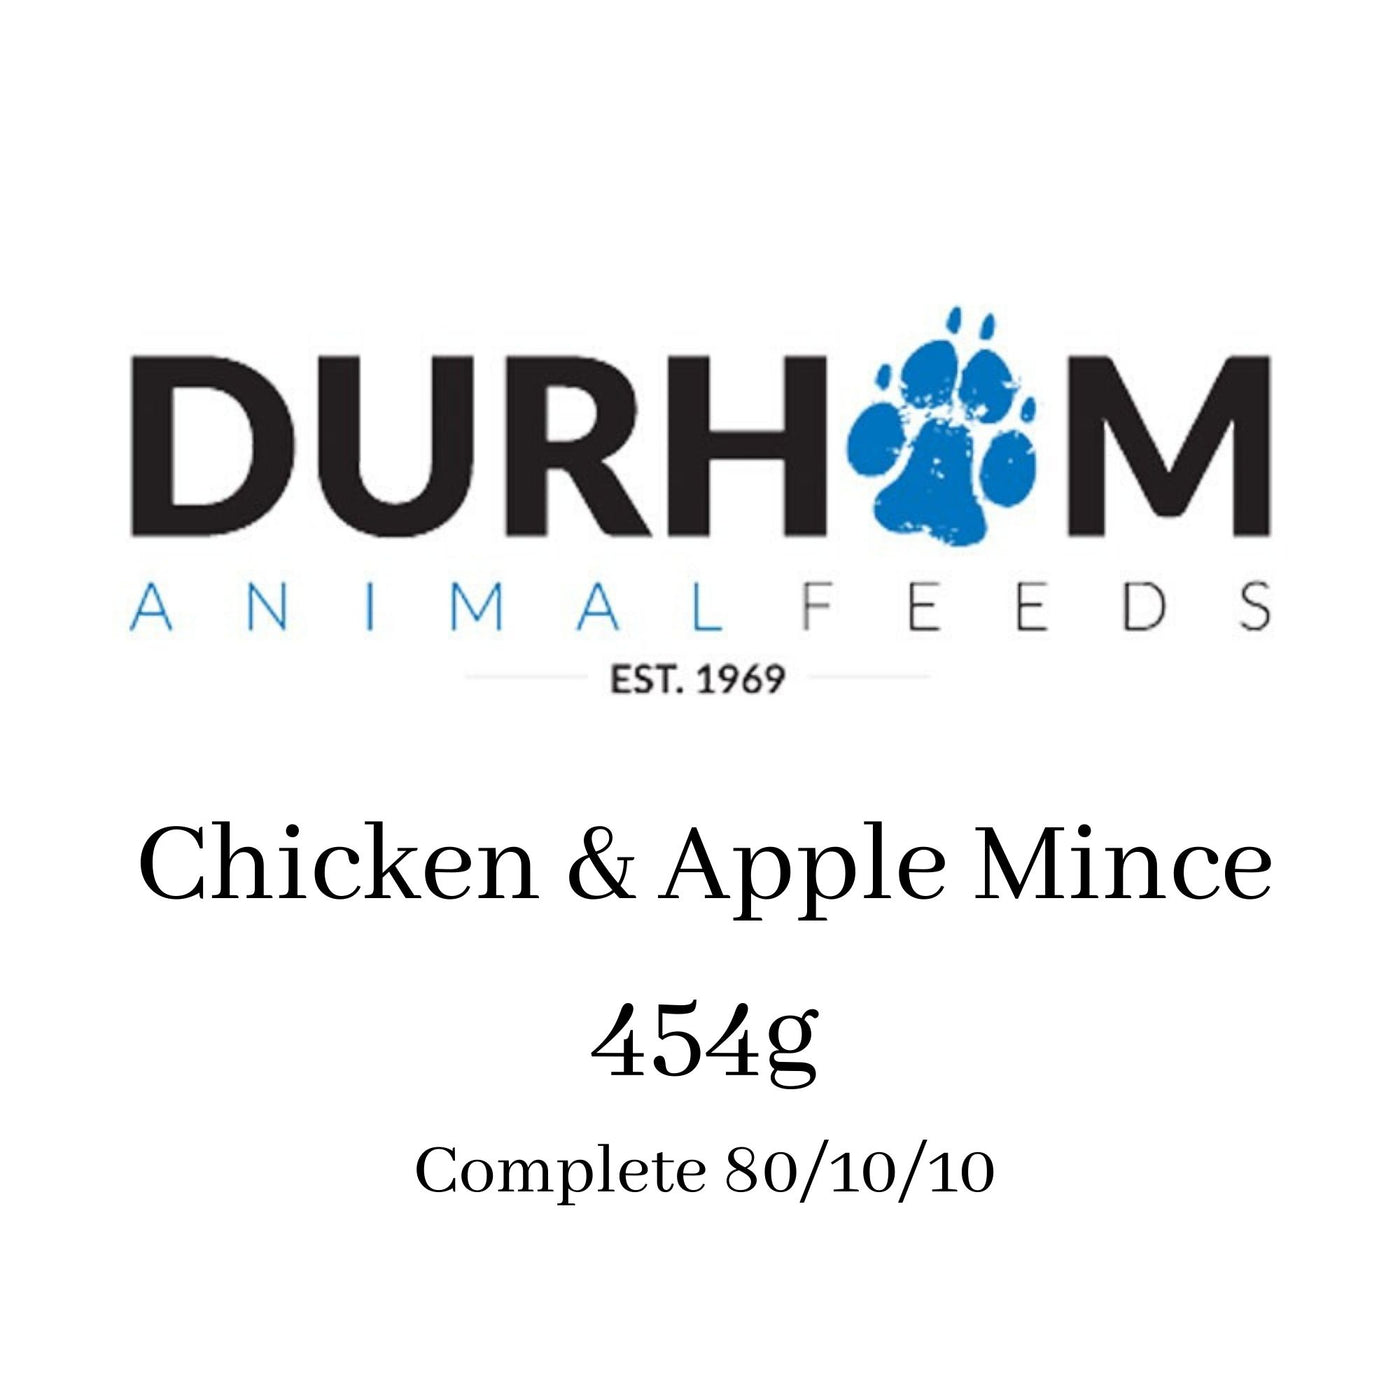 DAF - Chicken & Apple Mince 454g